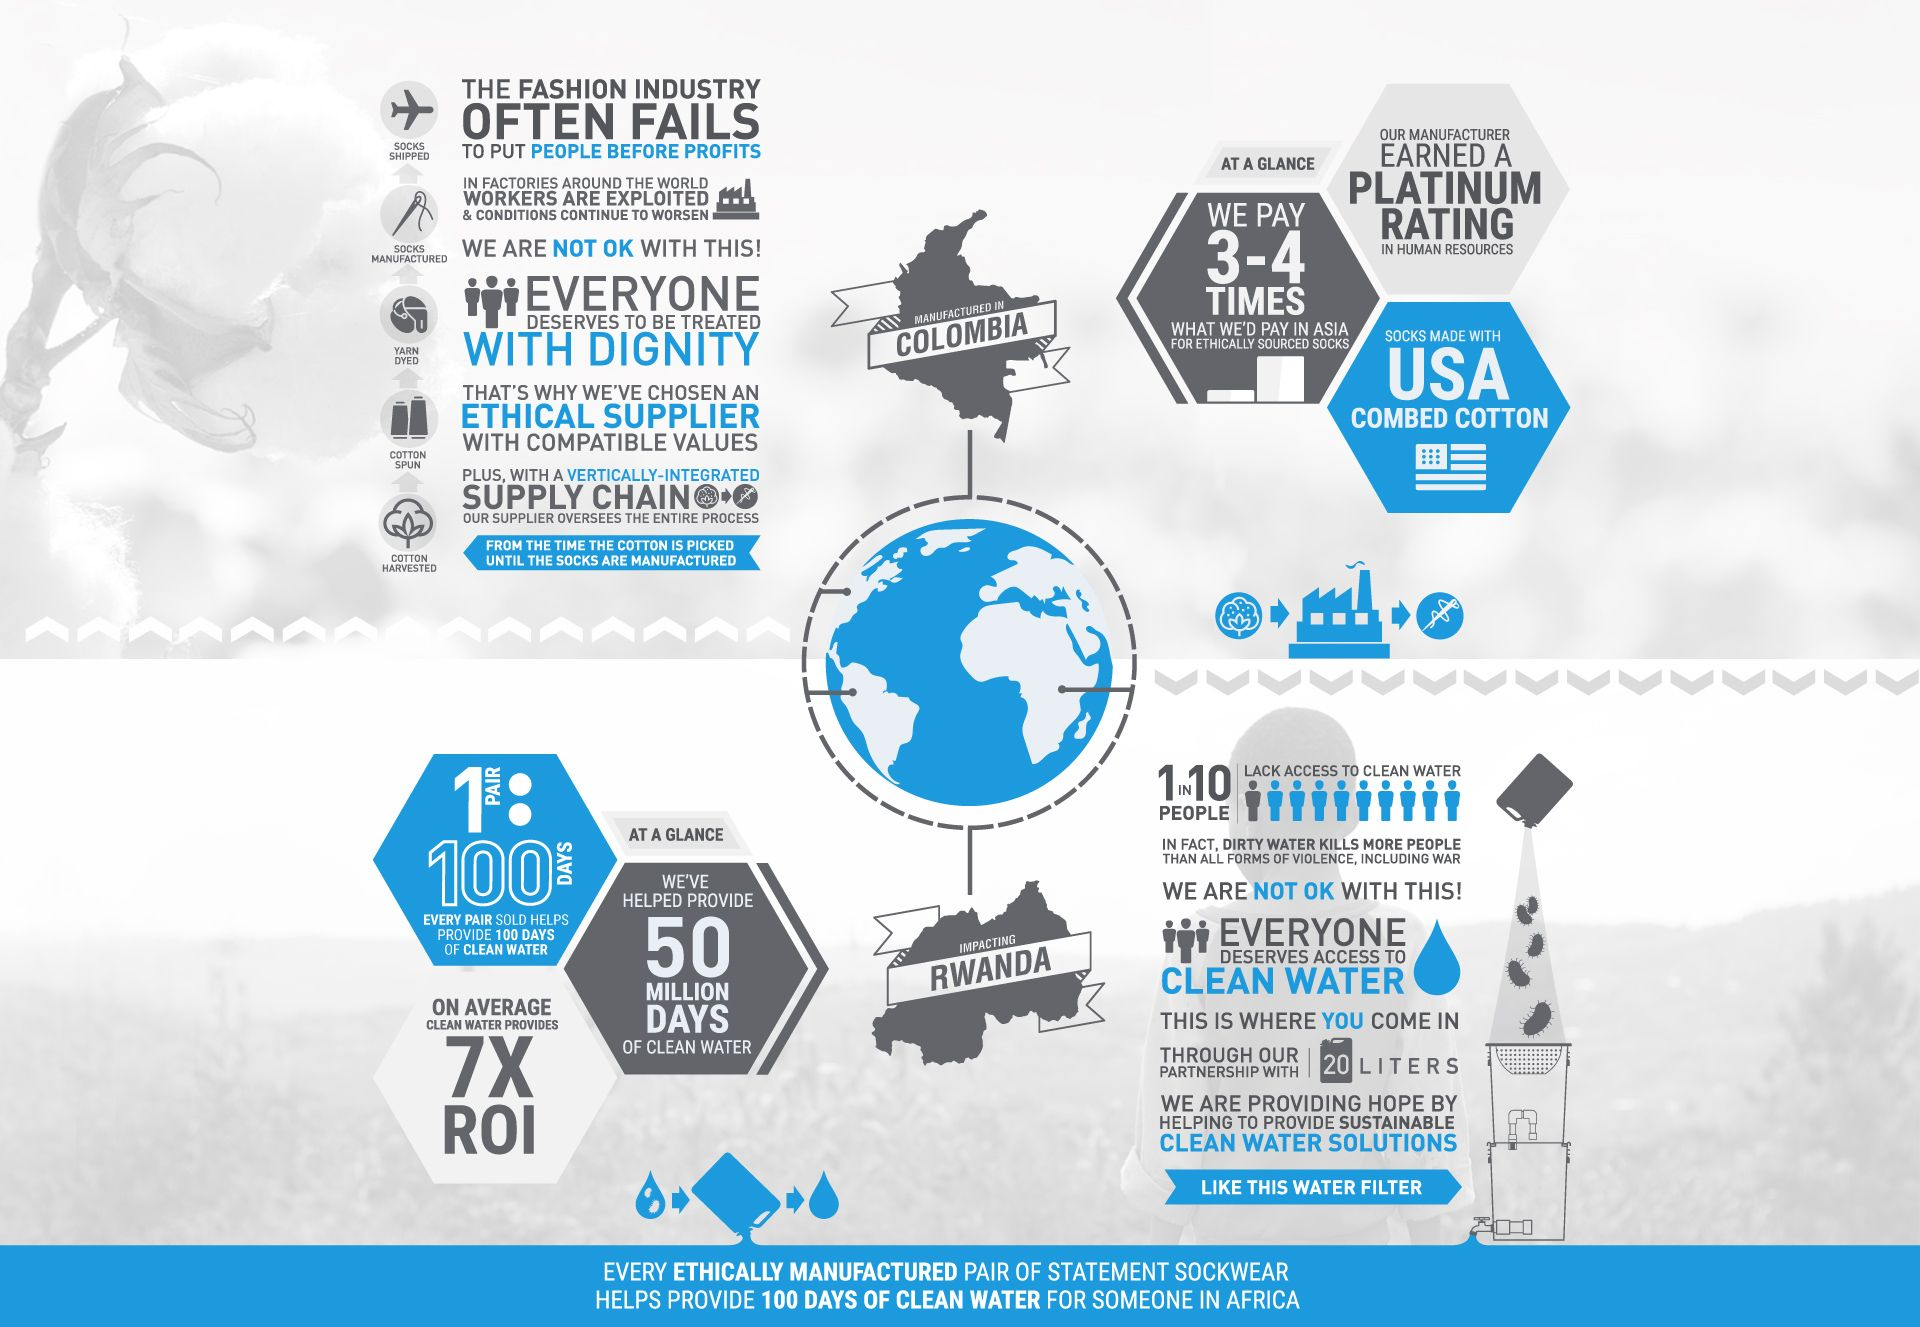 Statement Sockwear Ethical Manufacturing & Clean Water Initiative Infographic